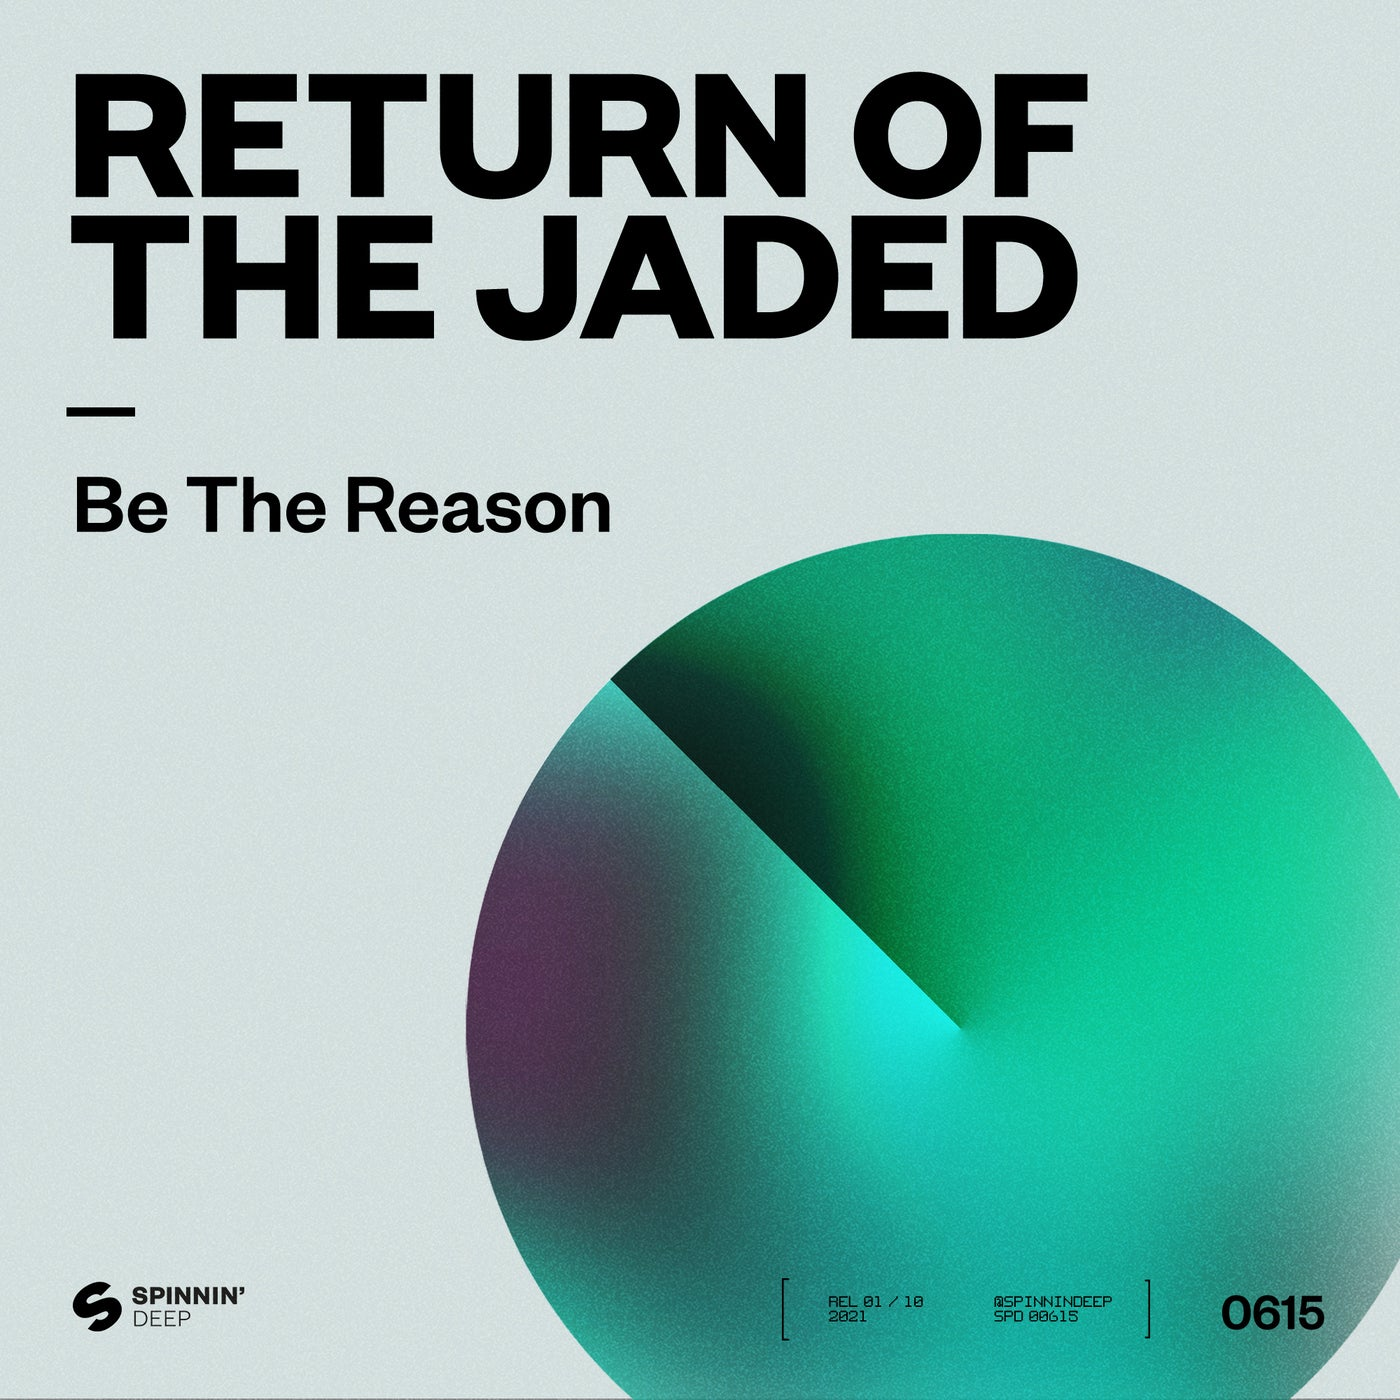 Be The Reason (Extended Mix)